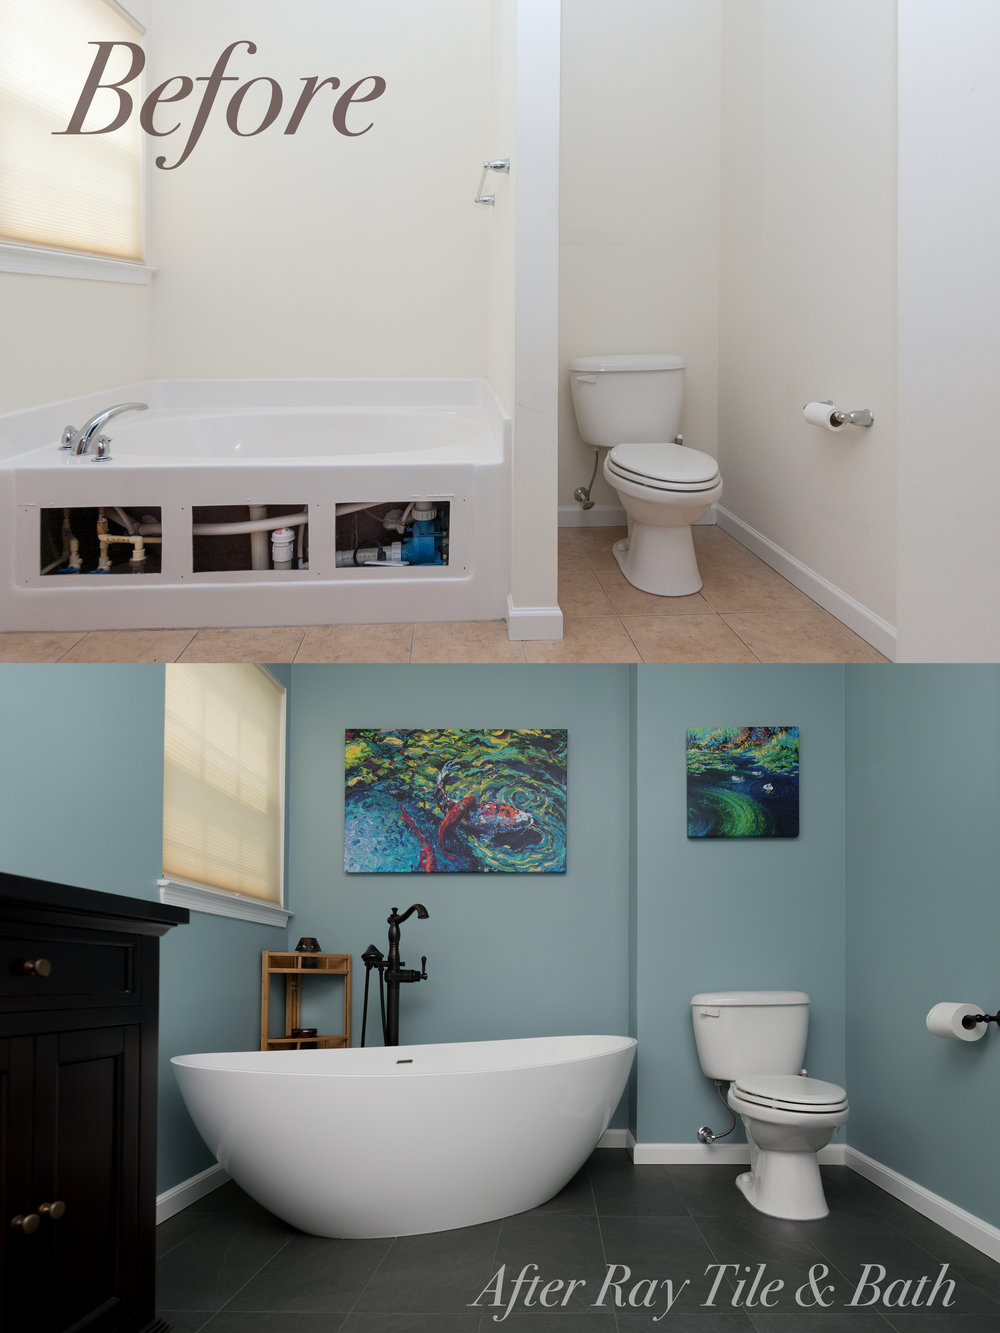 B4 and After tub and toilet.jpg